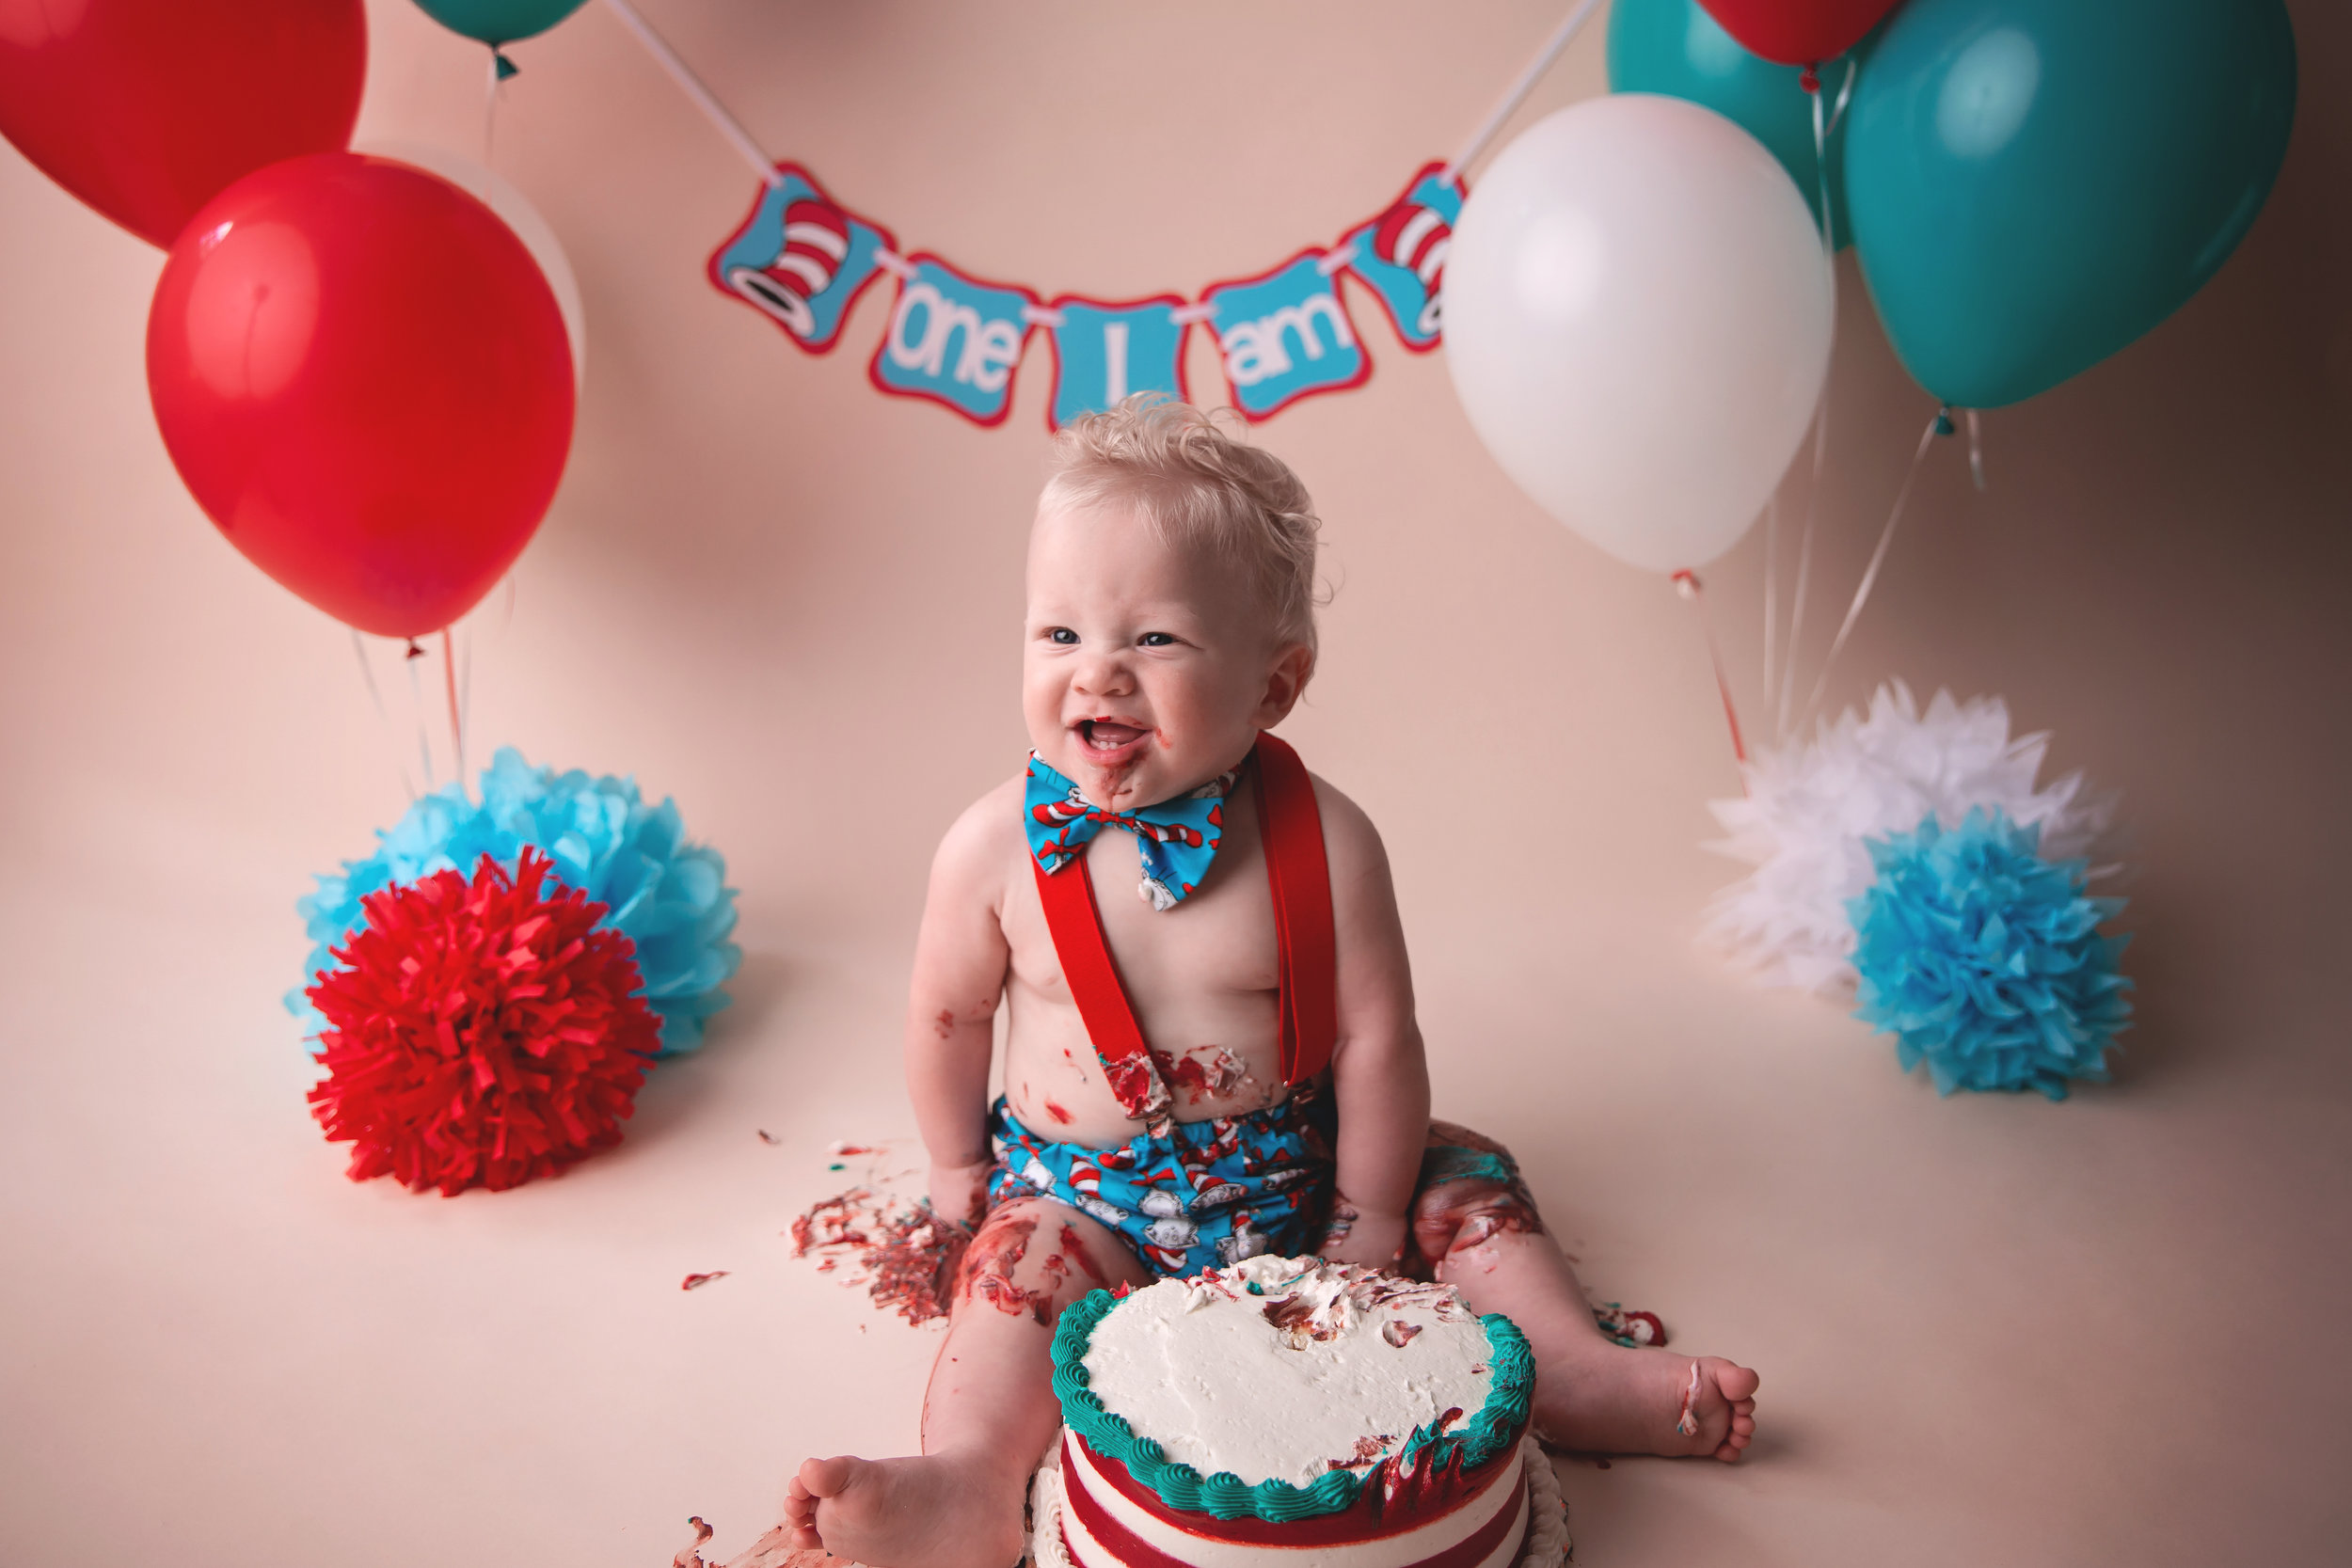 Sometimes we gotta get messy to have a little fun! - Having the honor of watching your little one grow is not something we take lightly. It's a privilege to capture these precious milestones as your sweet baby gets bigger and bigger becoming the unique tiny human they were made to be.